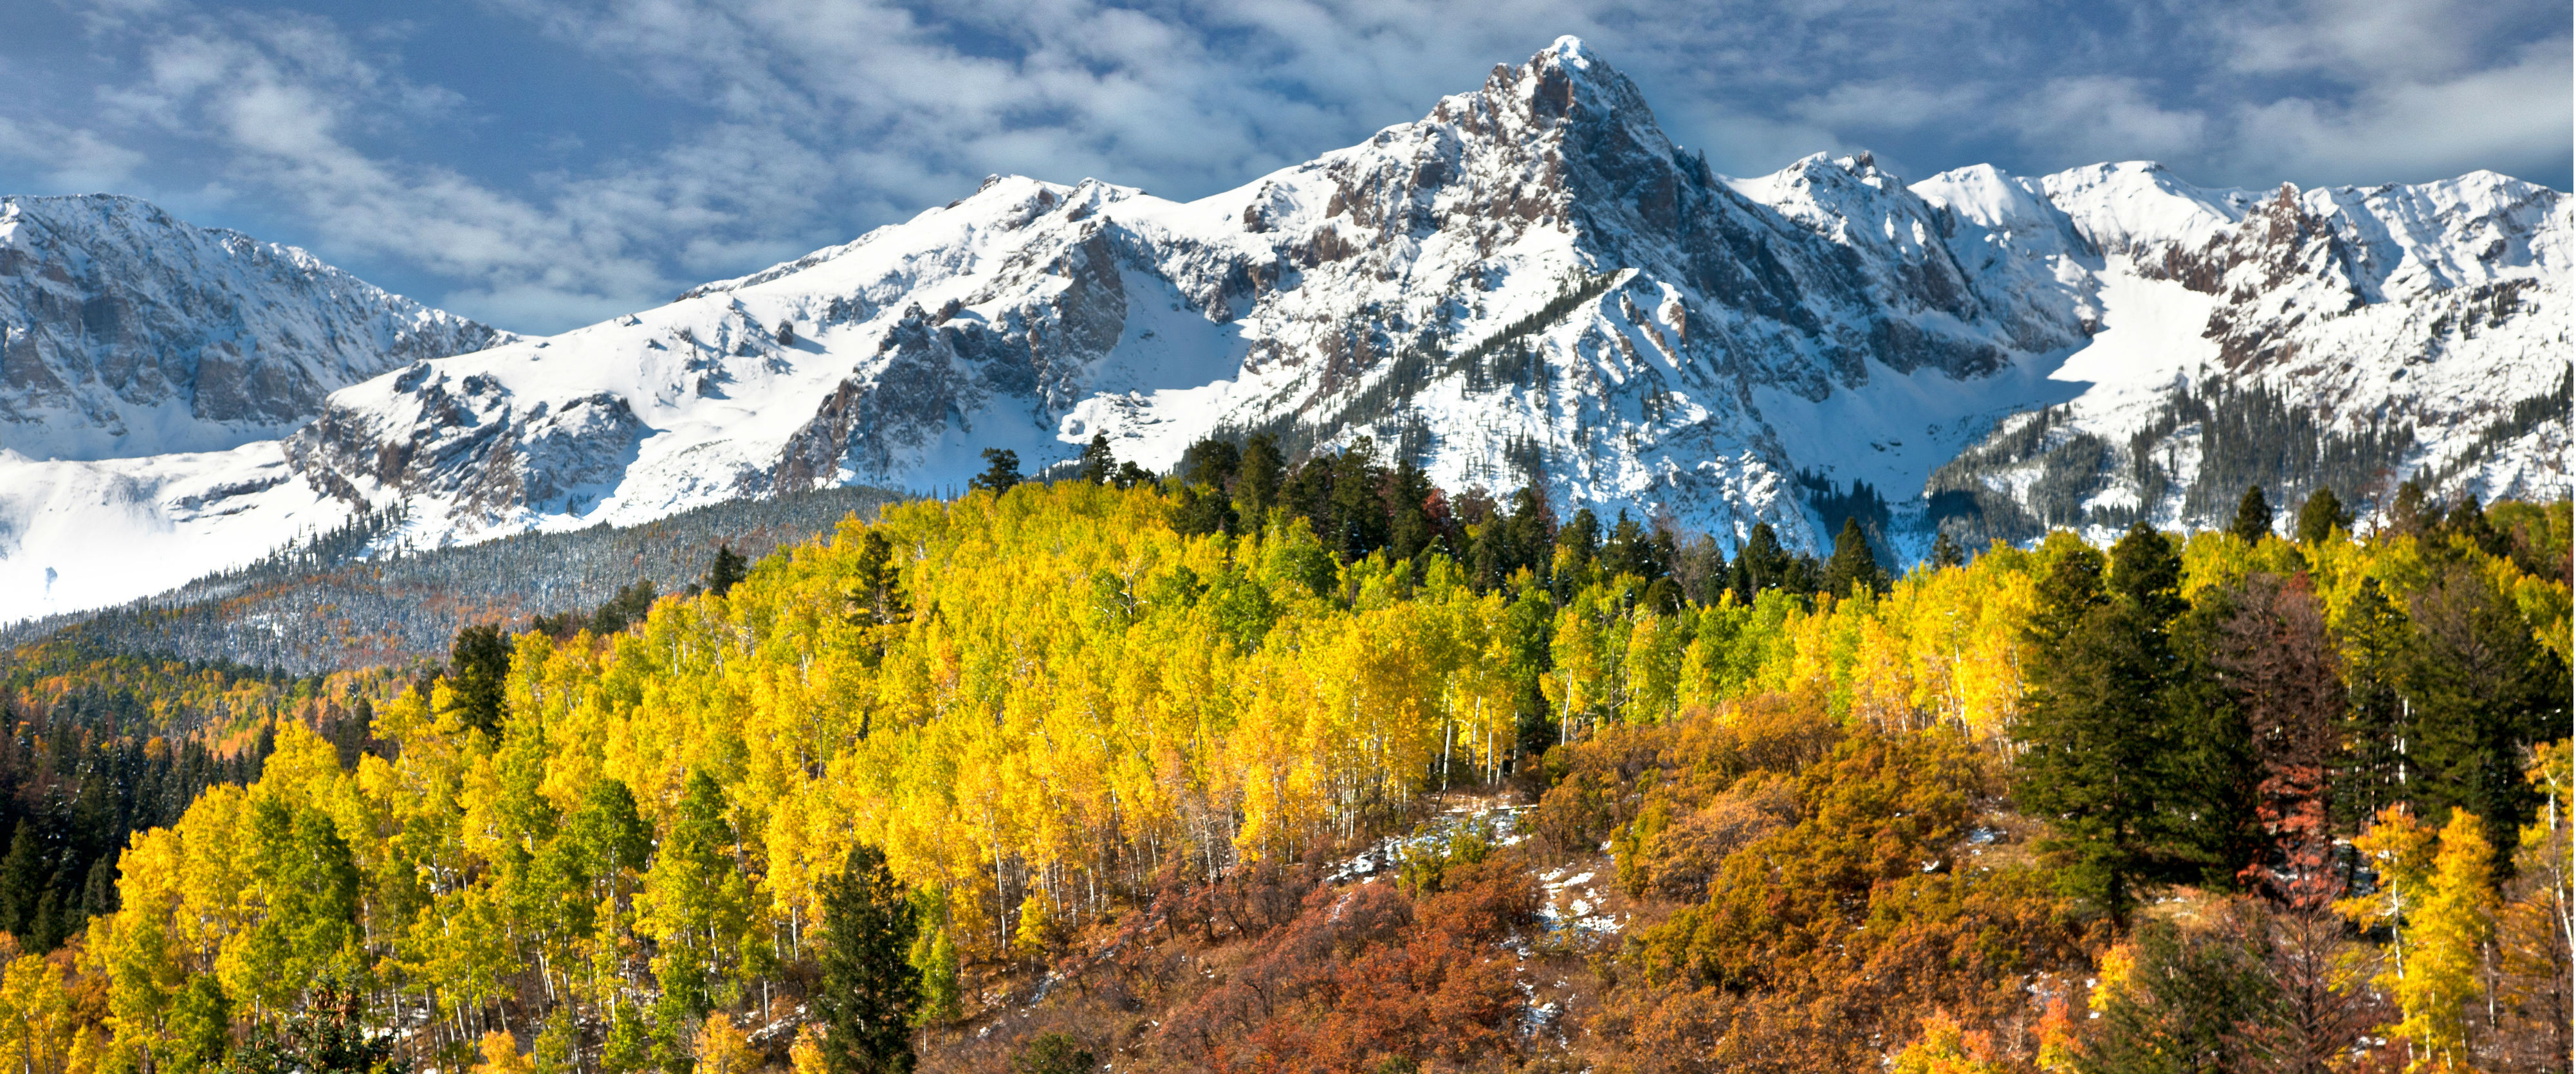 Fall Foliage Deskt Op Wallpaper 105 Oklahoma City To Denver Nonstop Into Ski Season